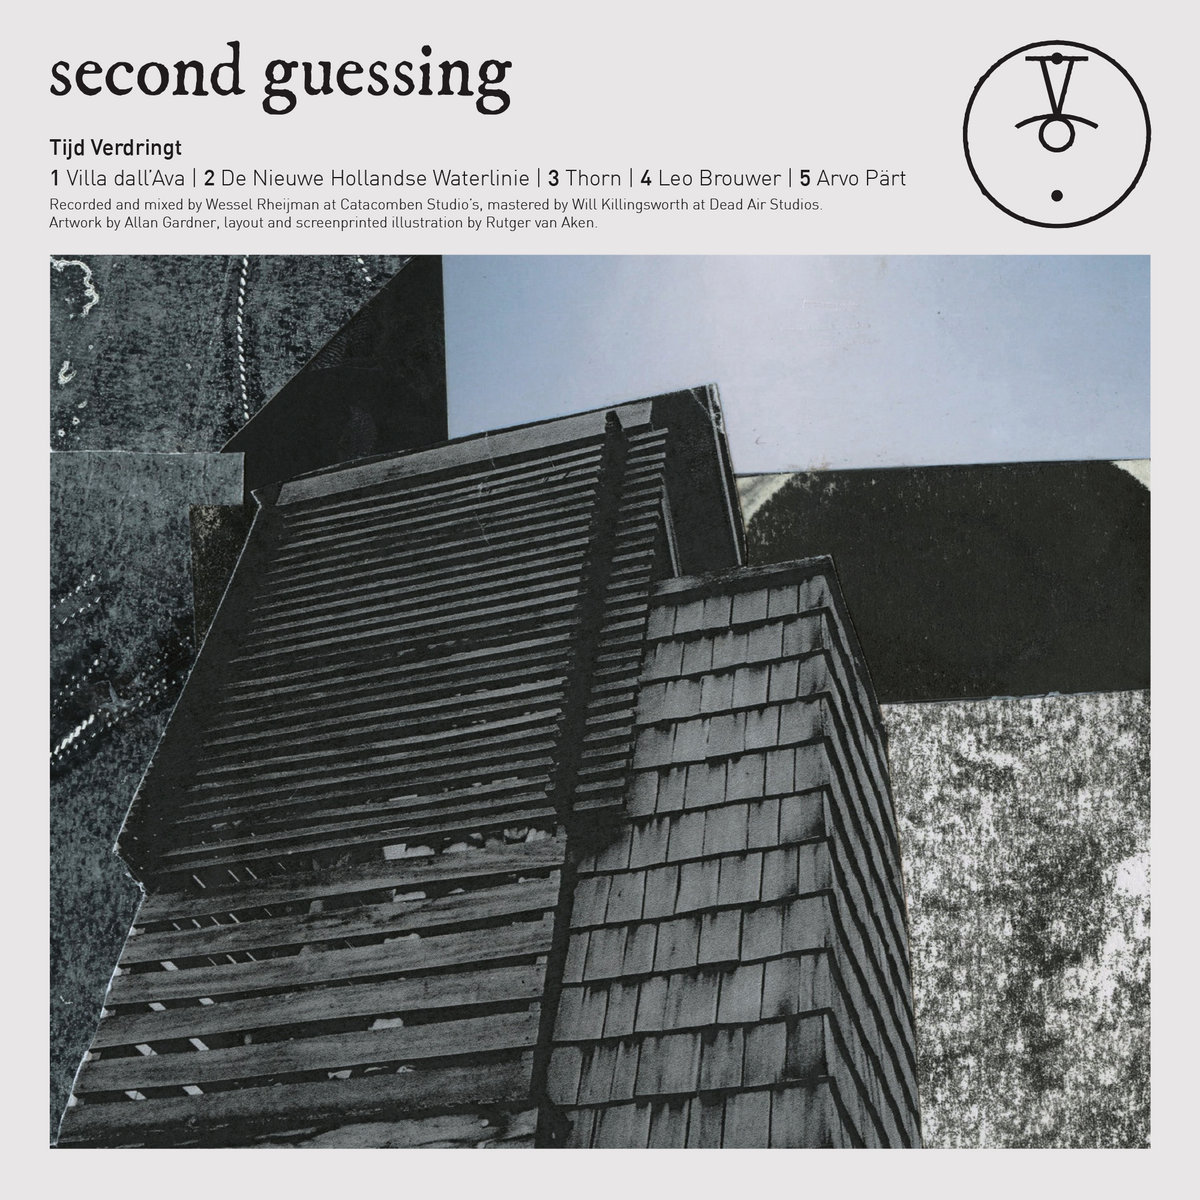 https://secondguessing.bandcamp.com/album/tijd-verdringt